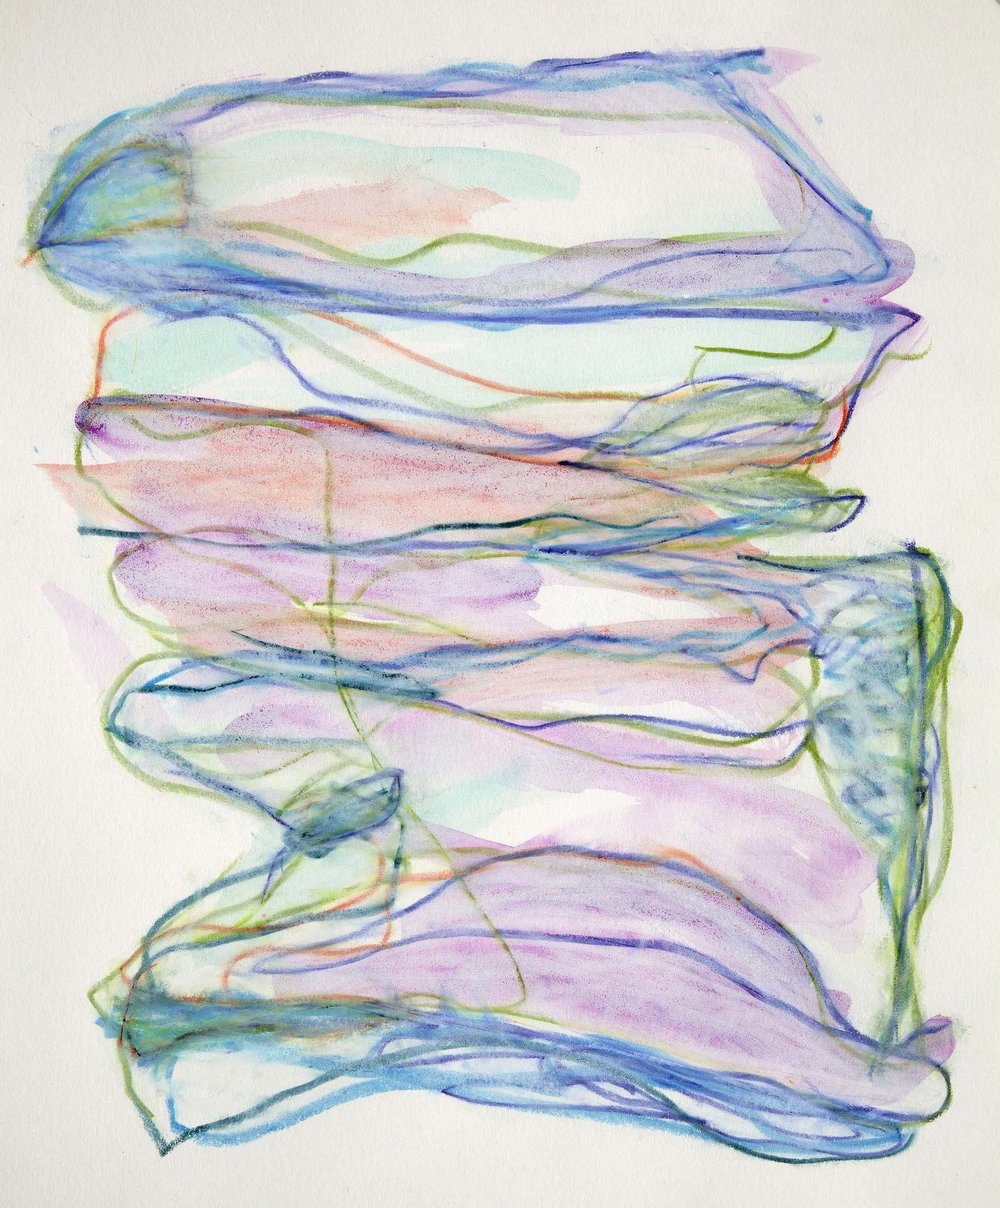 Untitled 3 , 2007  Watercolor, oil-wax chalk on paper